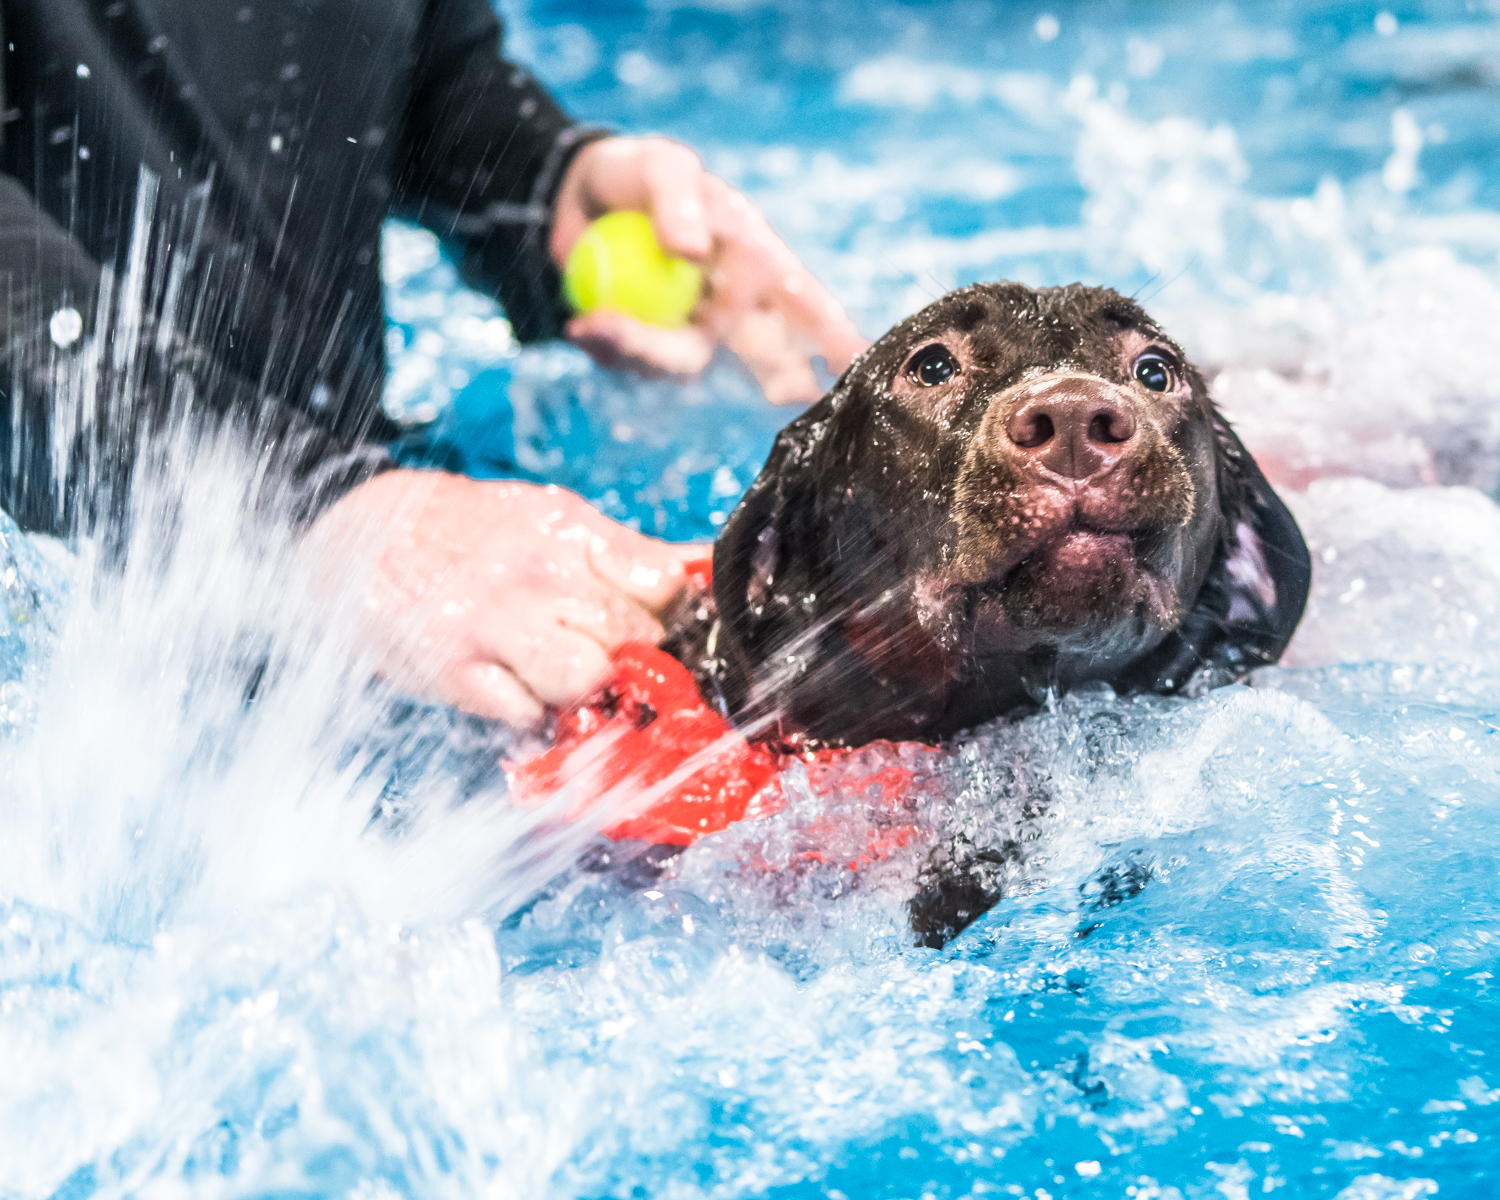 Six-month-old Chocolate Lab Tilly frantically paddles as she attempts to learn to swim at Club Aqua Paws Thursday afternoon in Downtown Racine.